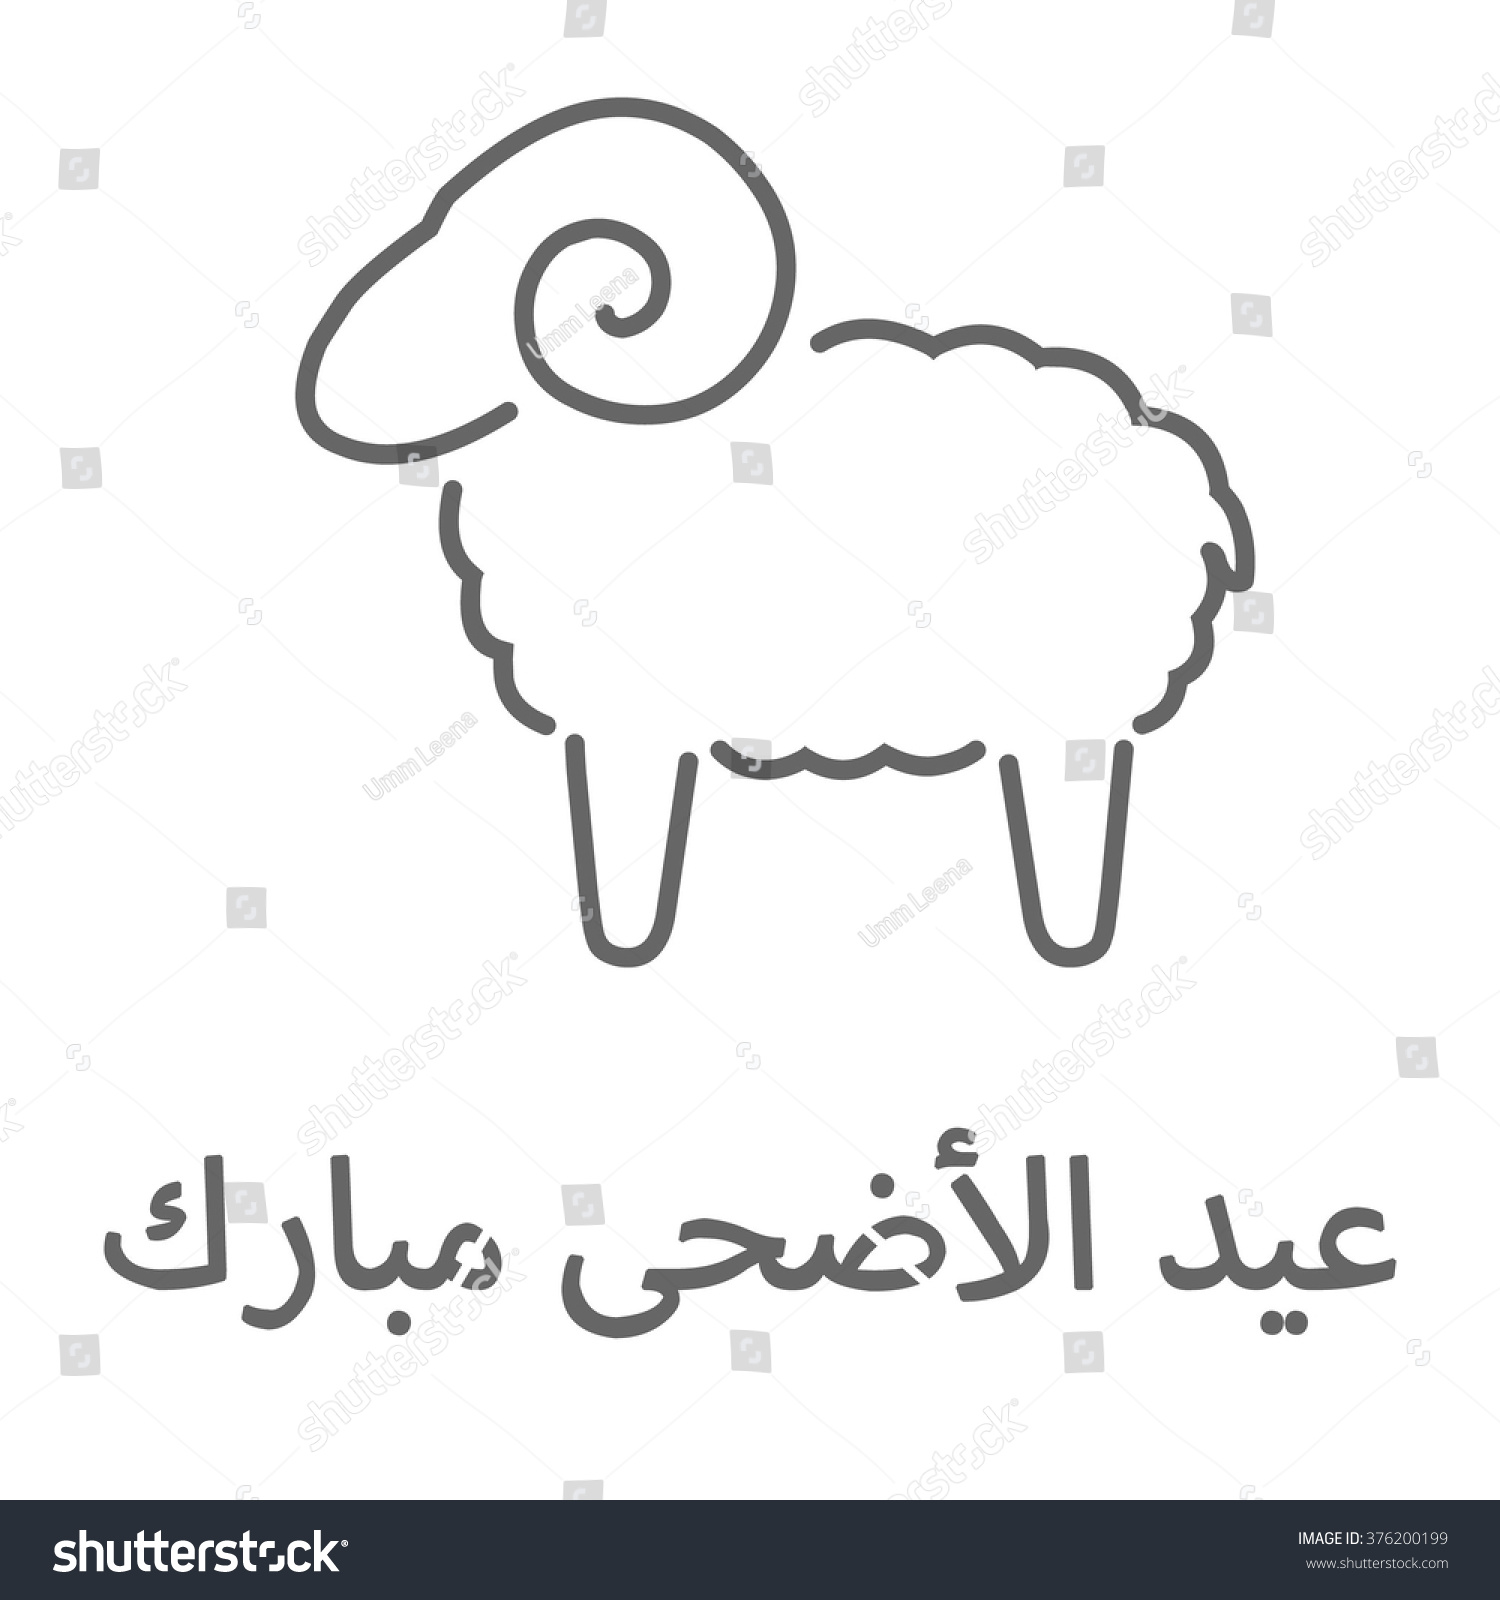 Islamic Template Stencil Sheep Arabic Calligraphy Stock Vector HD ...